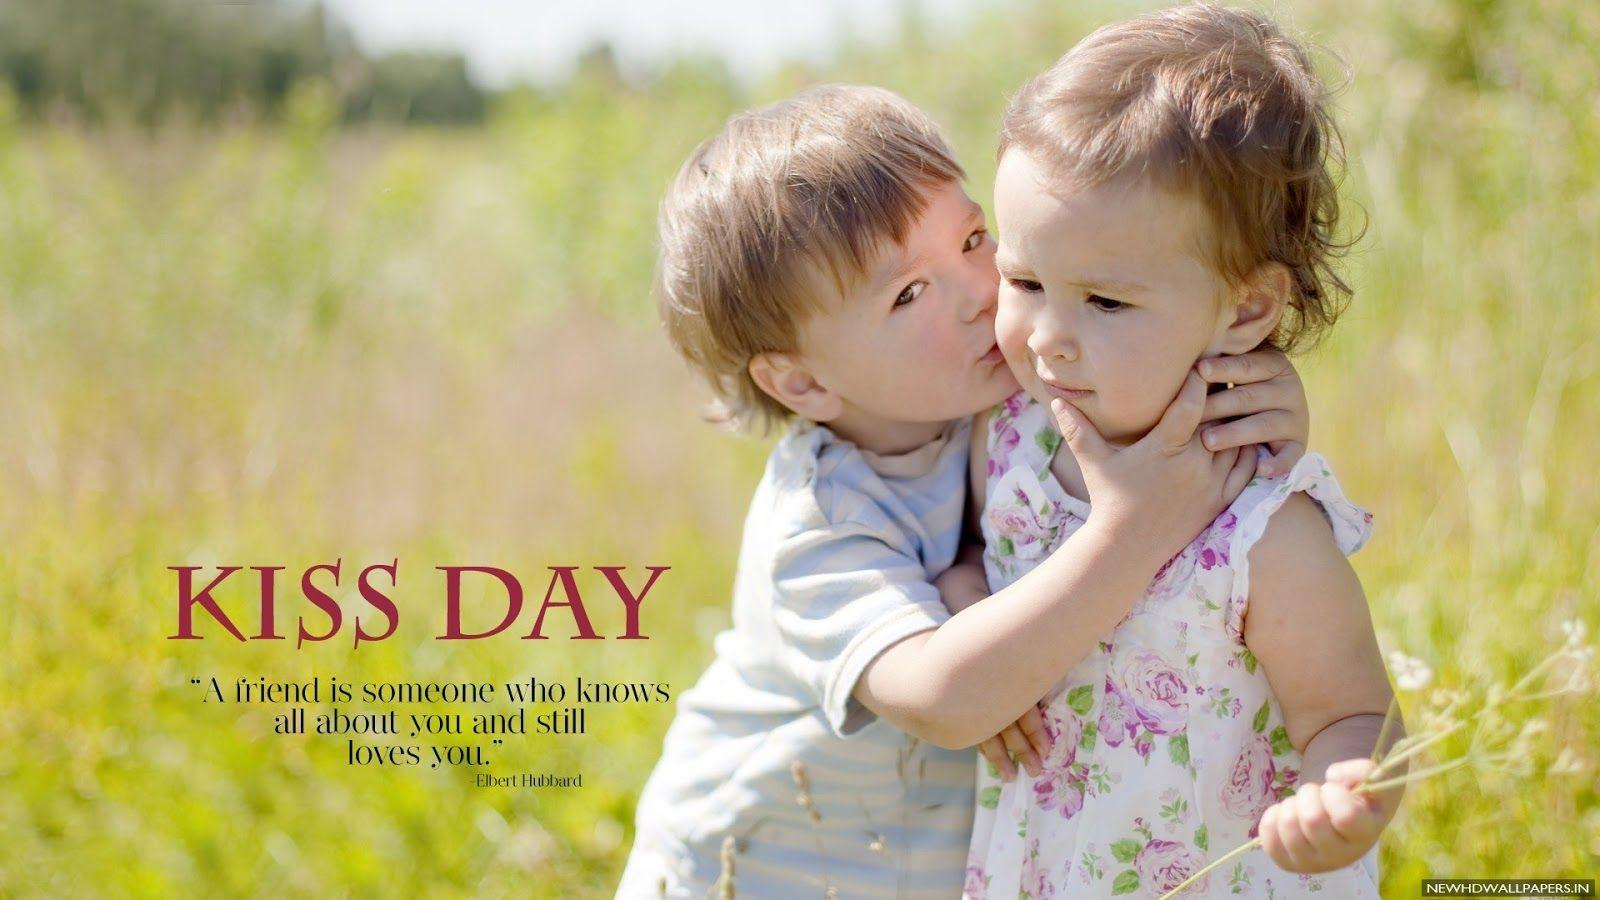 Cute Kiss day wallpapers 900×762 Cute Kiss Image Wallpapers